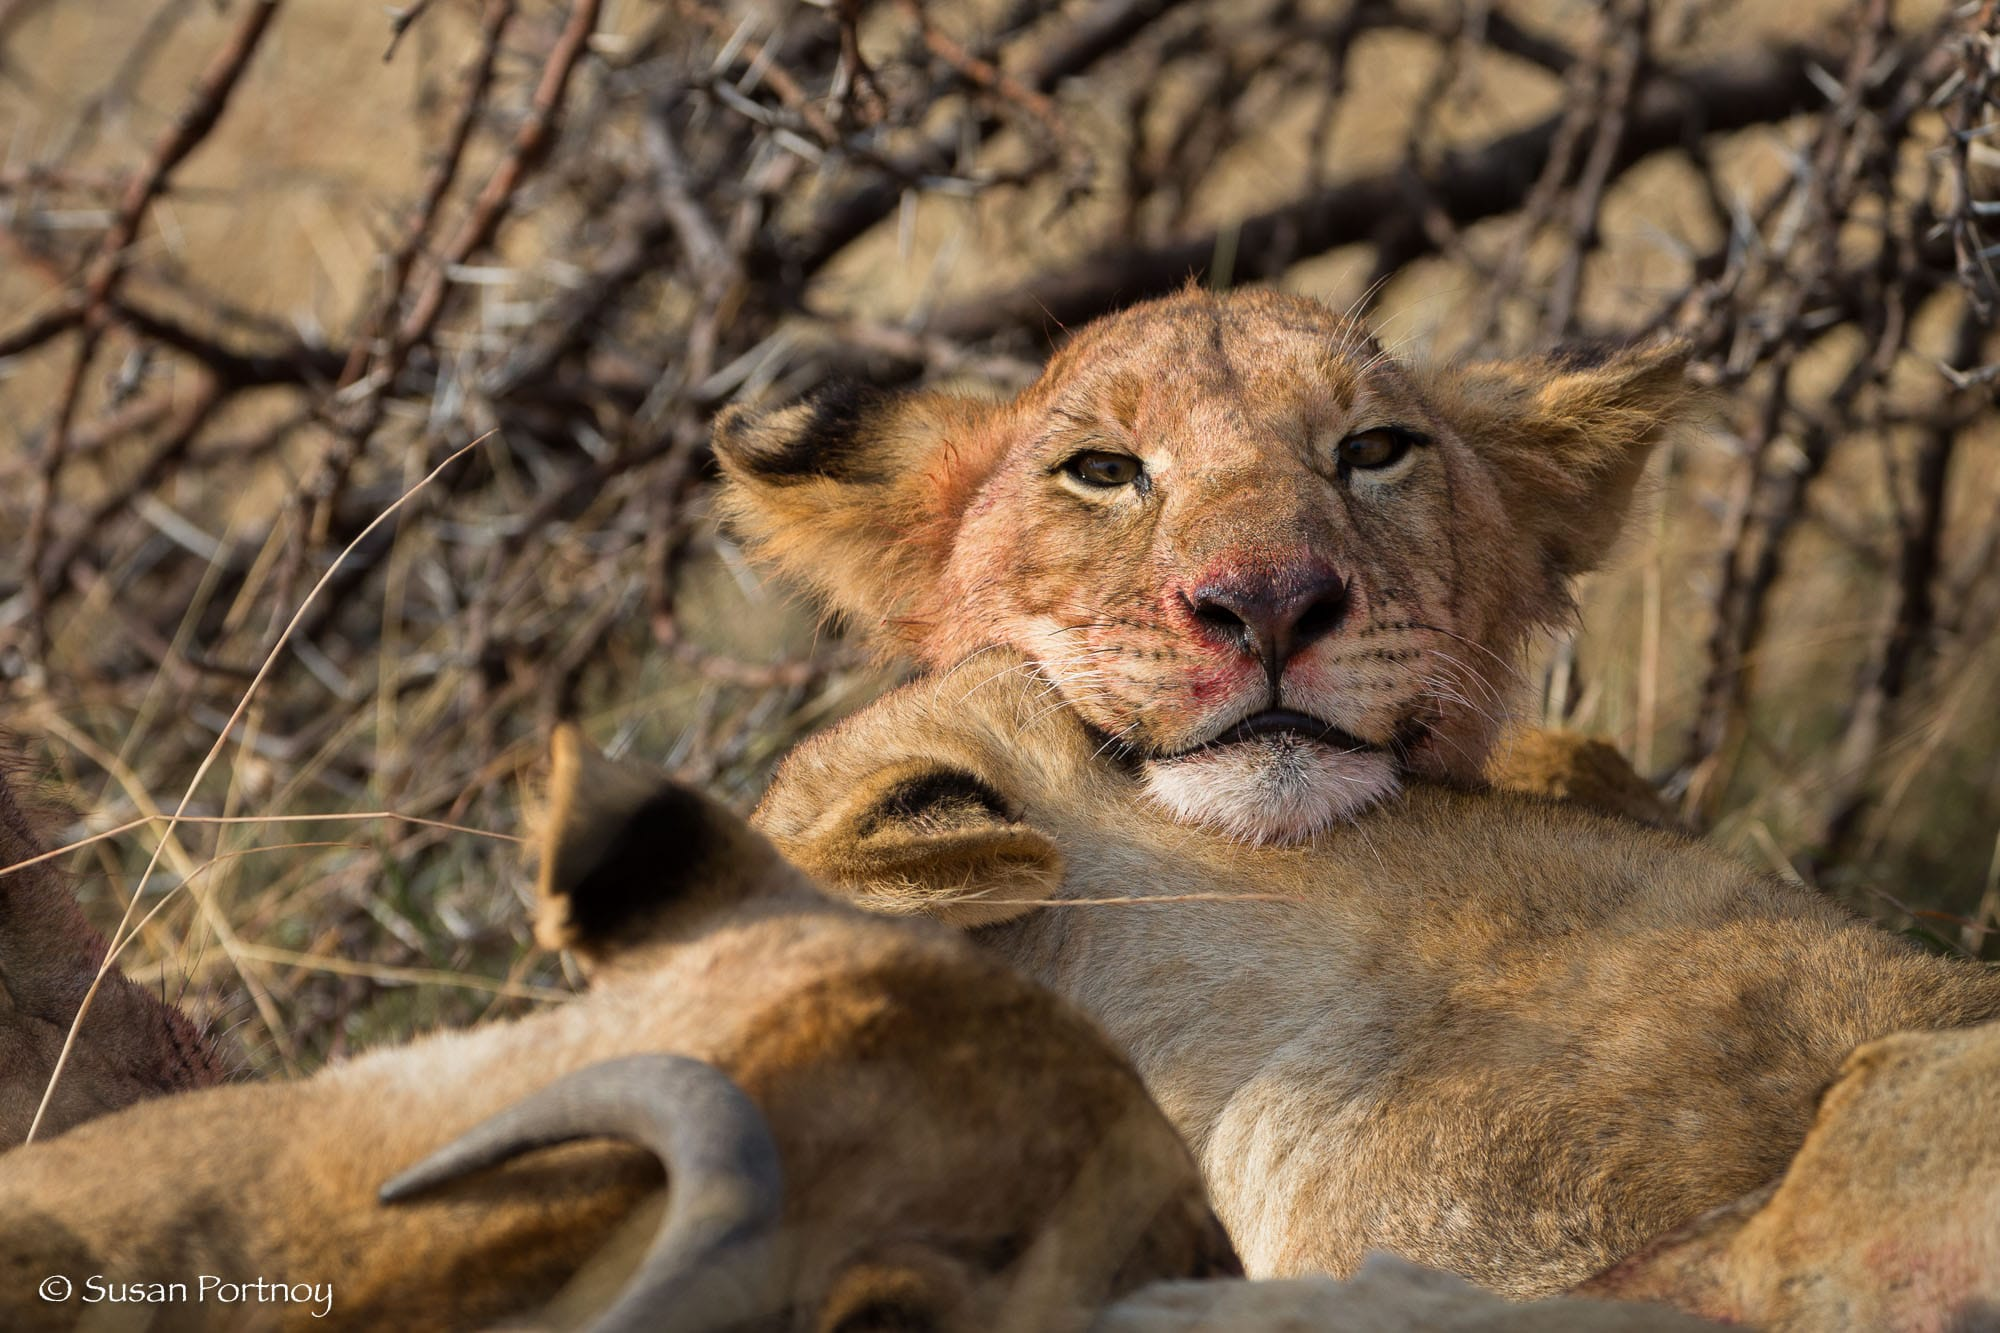 Lion cub with blood on its mouth eating looks at the camera